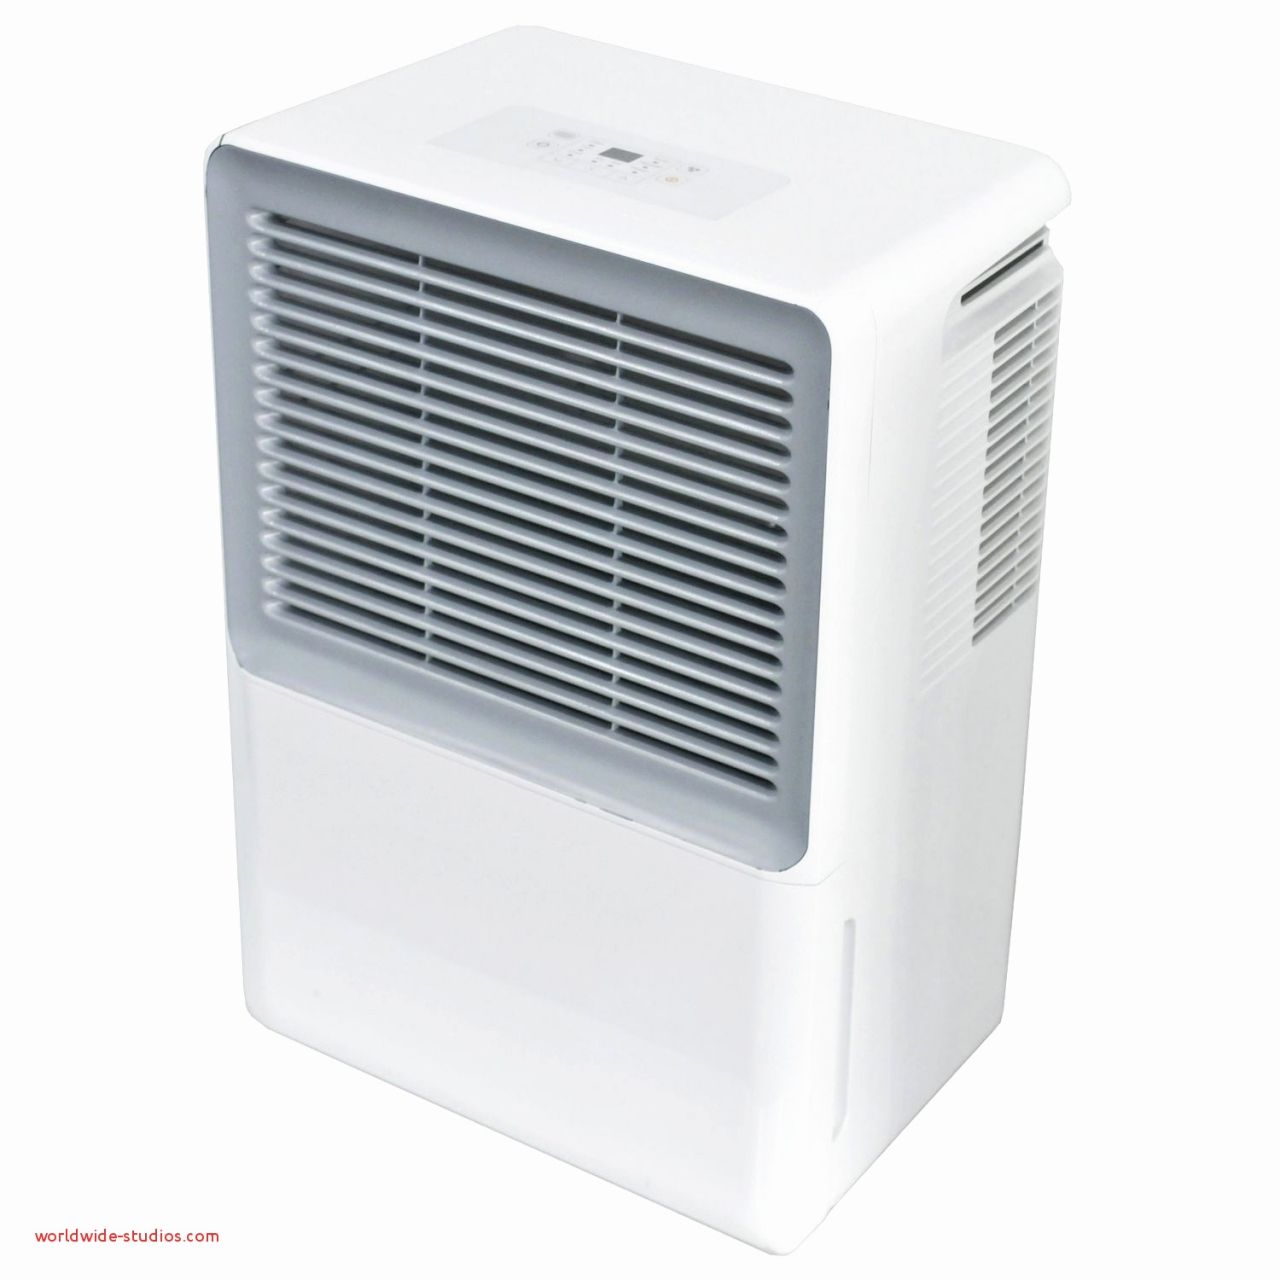 201 Wall Mounted Dehumidifier For Bathroom Check More At Https Www Michelenails Com 70 Wall Mounted Dehumidifie Dehumidifiers Washable Air Filter Energy Star